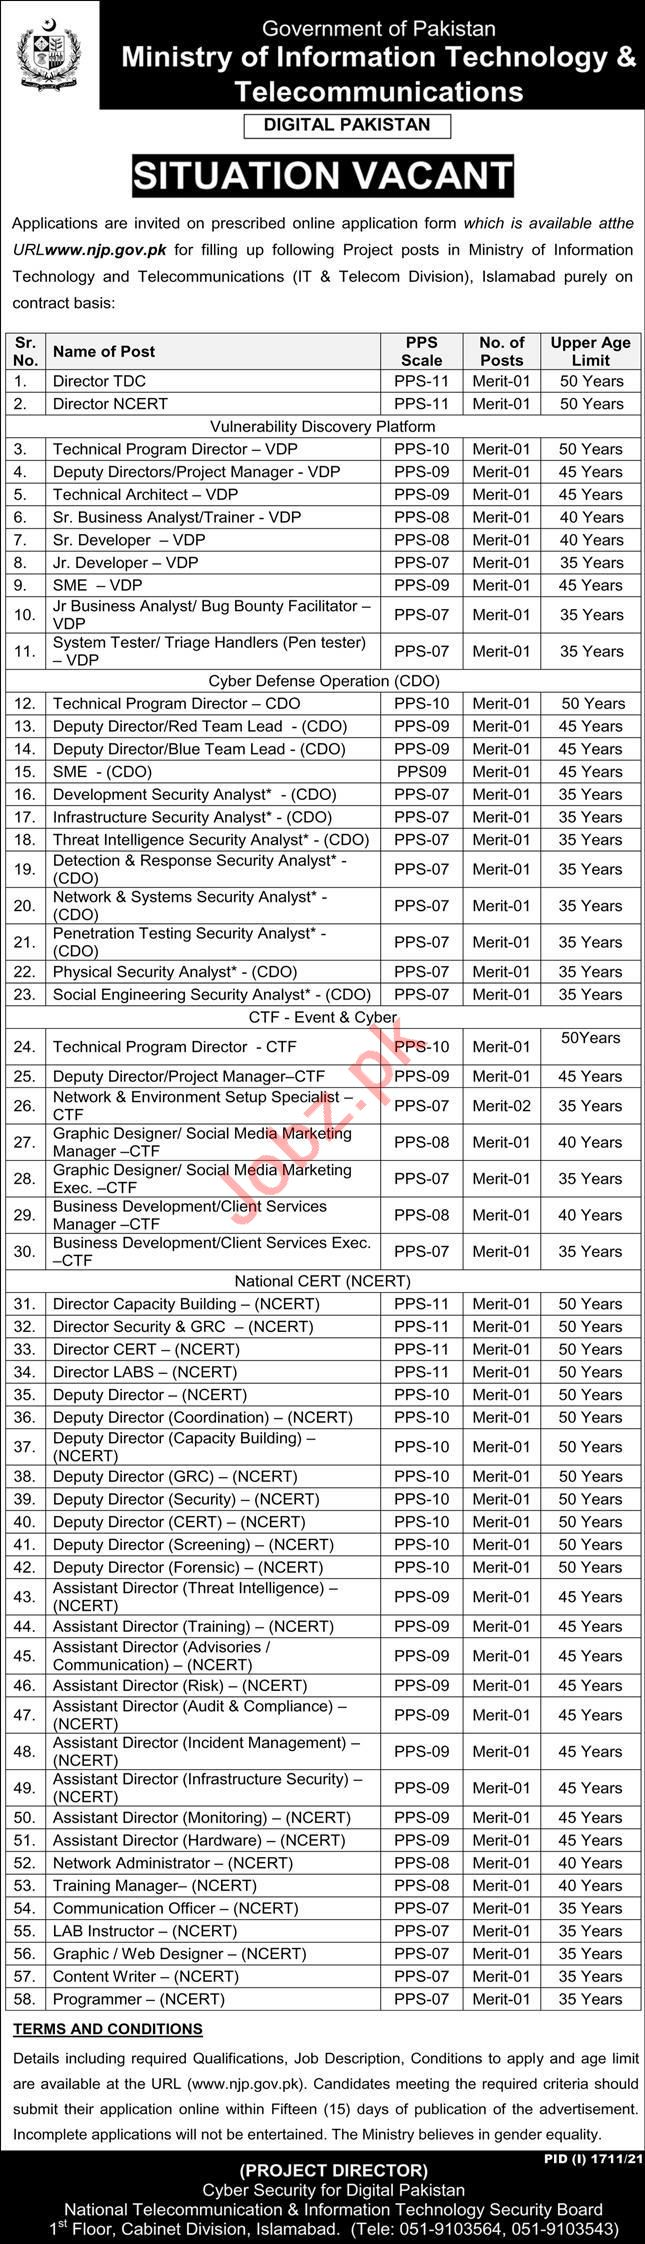 Ministry of IT & Telecommunication Management Jobs 2021